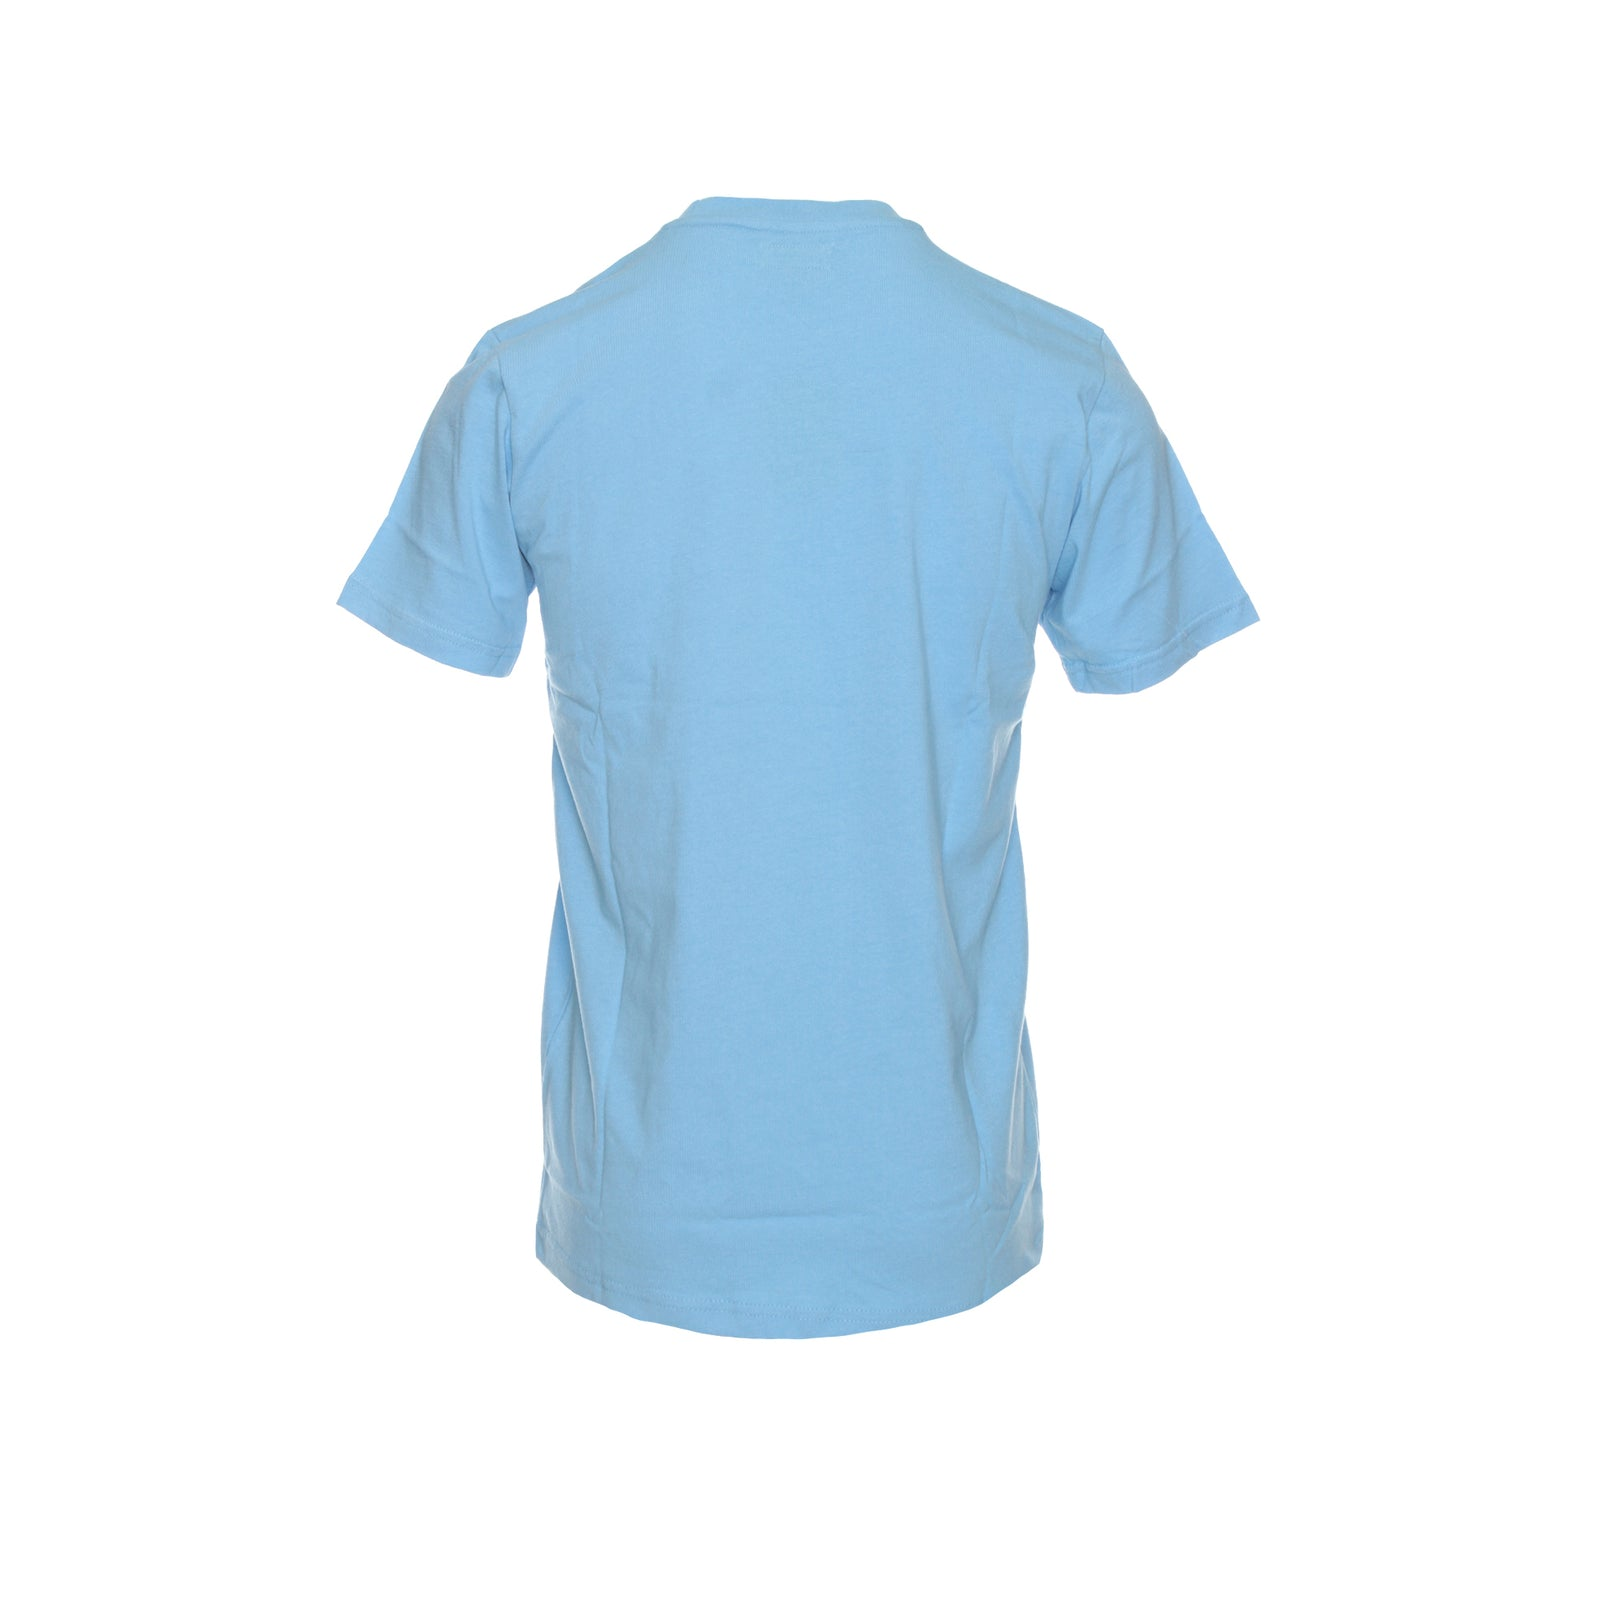 Chinatown Market Beware Short Sleeve Men's Tee Baby Blue